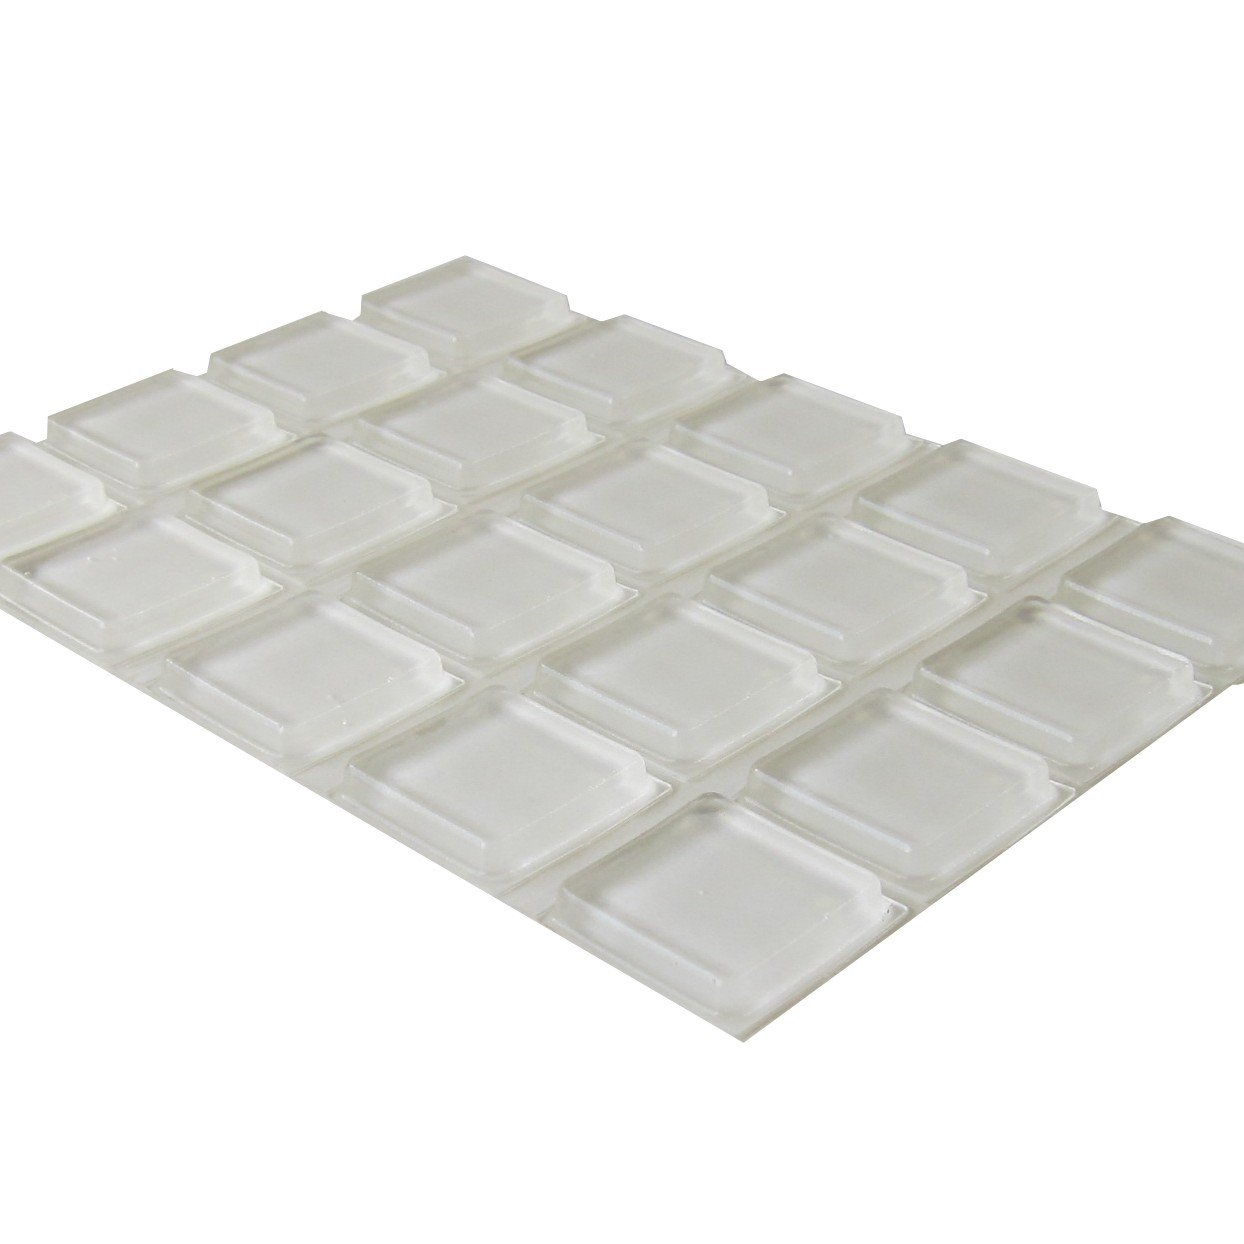 Rubber Feet Adhesive Rubber Pads, 1 Inch Square Self Stick Bumpers, Clear Bumper Pads - 105 Pack